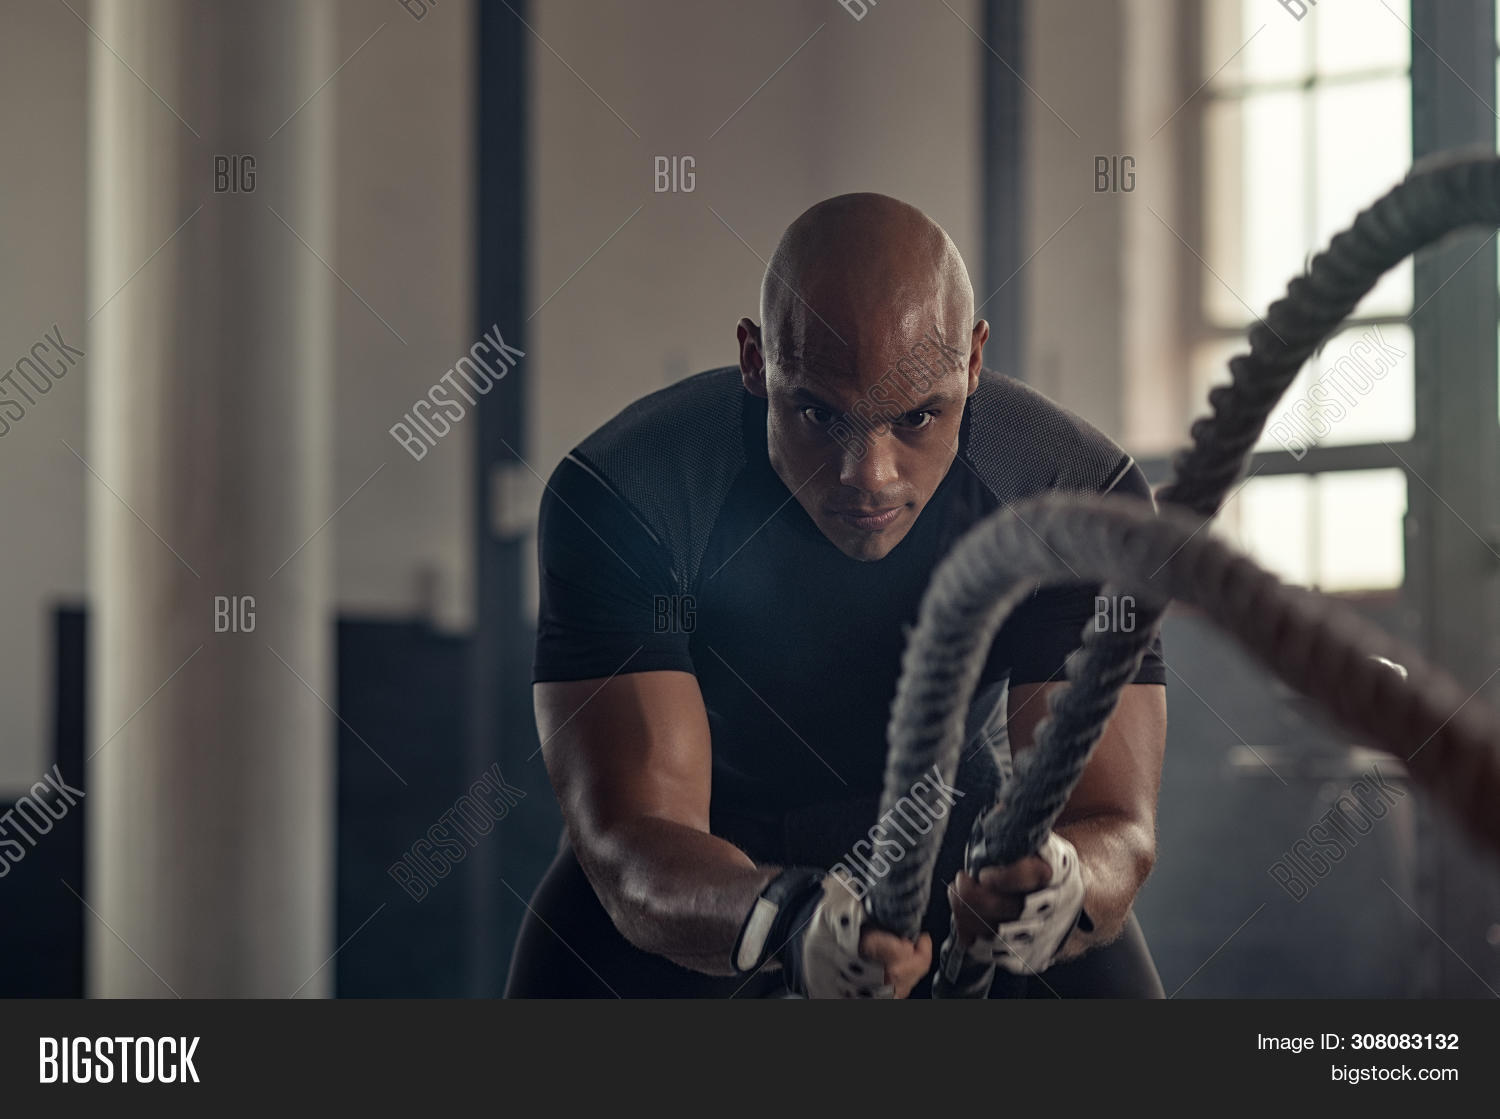 african,african american,african man,american,athlete,battle,battle rope,battle ropes,black,body,challenge,concentrated,copy space,dark,determination,determined,determined man,effort,endurance,exercise,fit,fitness,fitness training,functional,functional training,grunge,guy,gym,healthy,industrial,intensive,man,motivated,motivation,muscle,muscle man,people,rope,sport,sportsman,strength,strength training,sweat,trainer,training,waves,work out,workout,workout gym,young